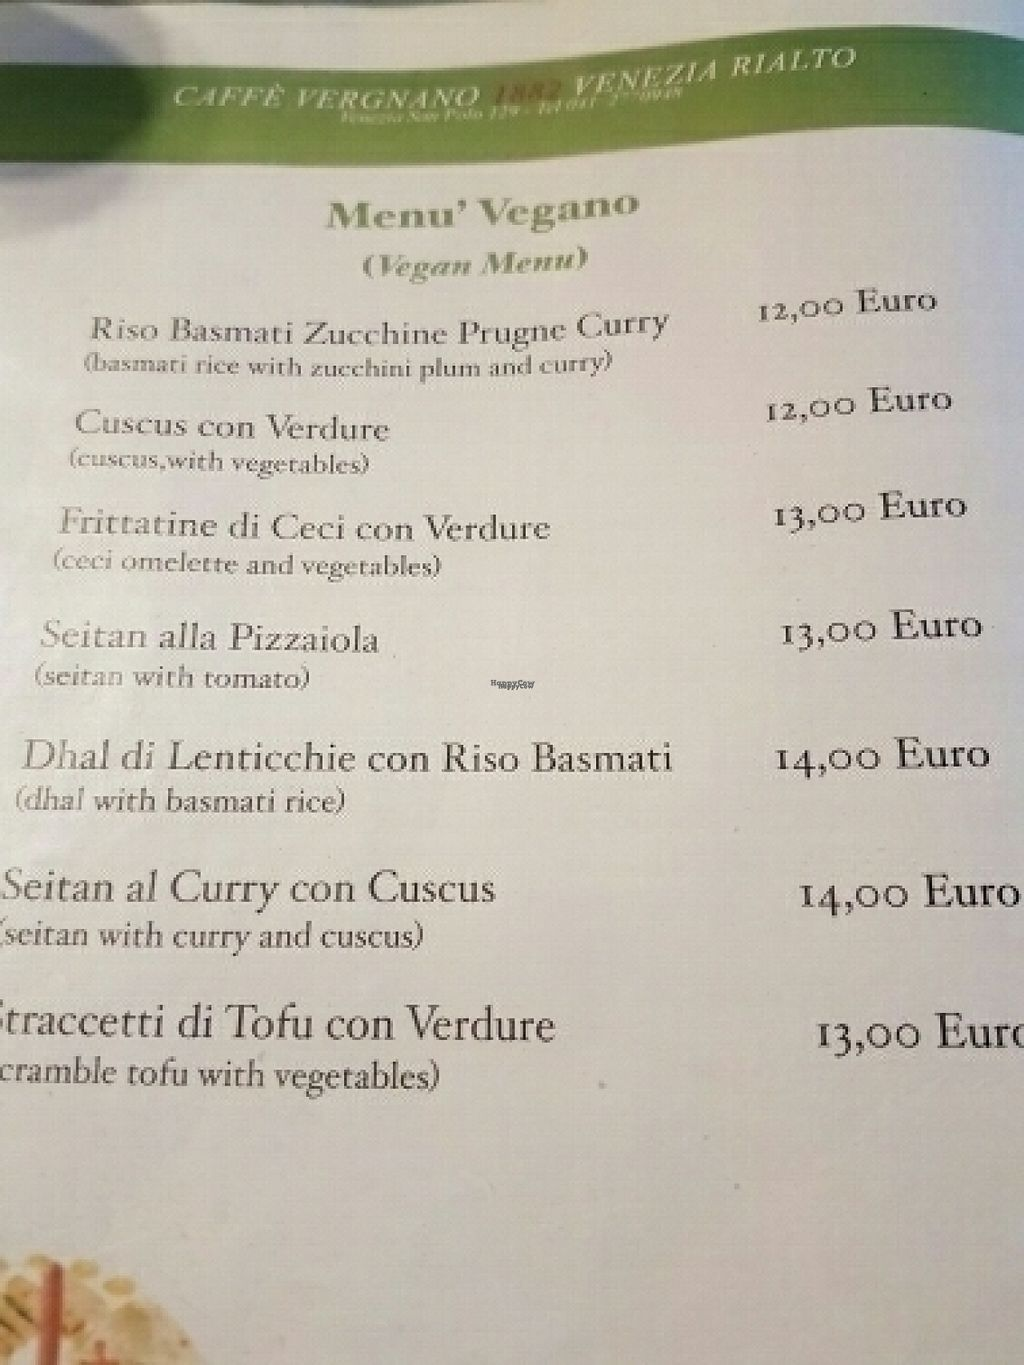 """Photo of Caffe Vergnano 1882 - Rialto  by <a href=""""/members/profile/Good%20for%20Vegans"""">Good for Vegans</a> <br/>Vegan menu <br/> August 18, 2016  - <a href='/contact/abuse/image/78836/169819'>Report</a>"""